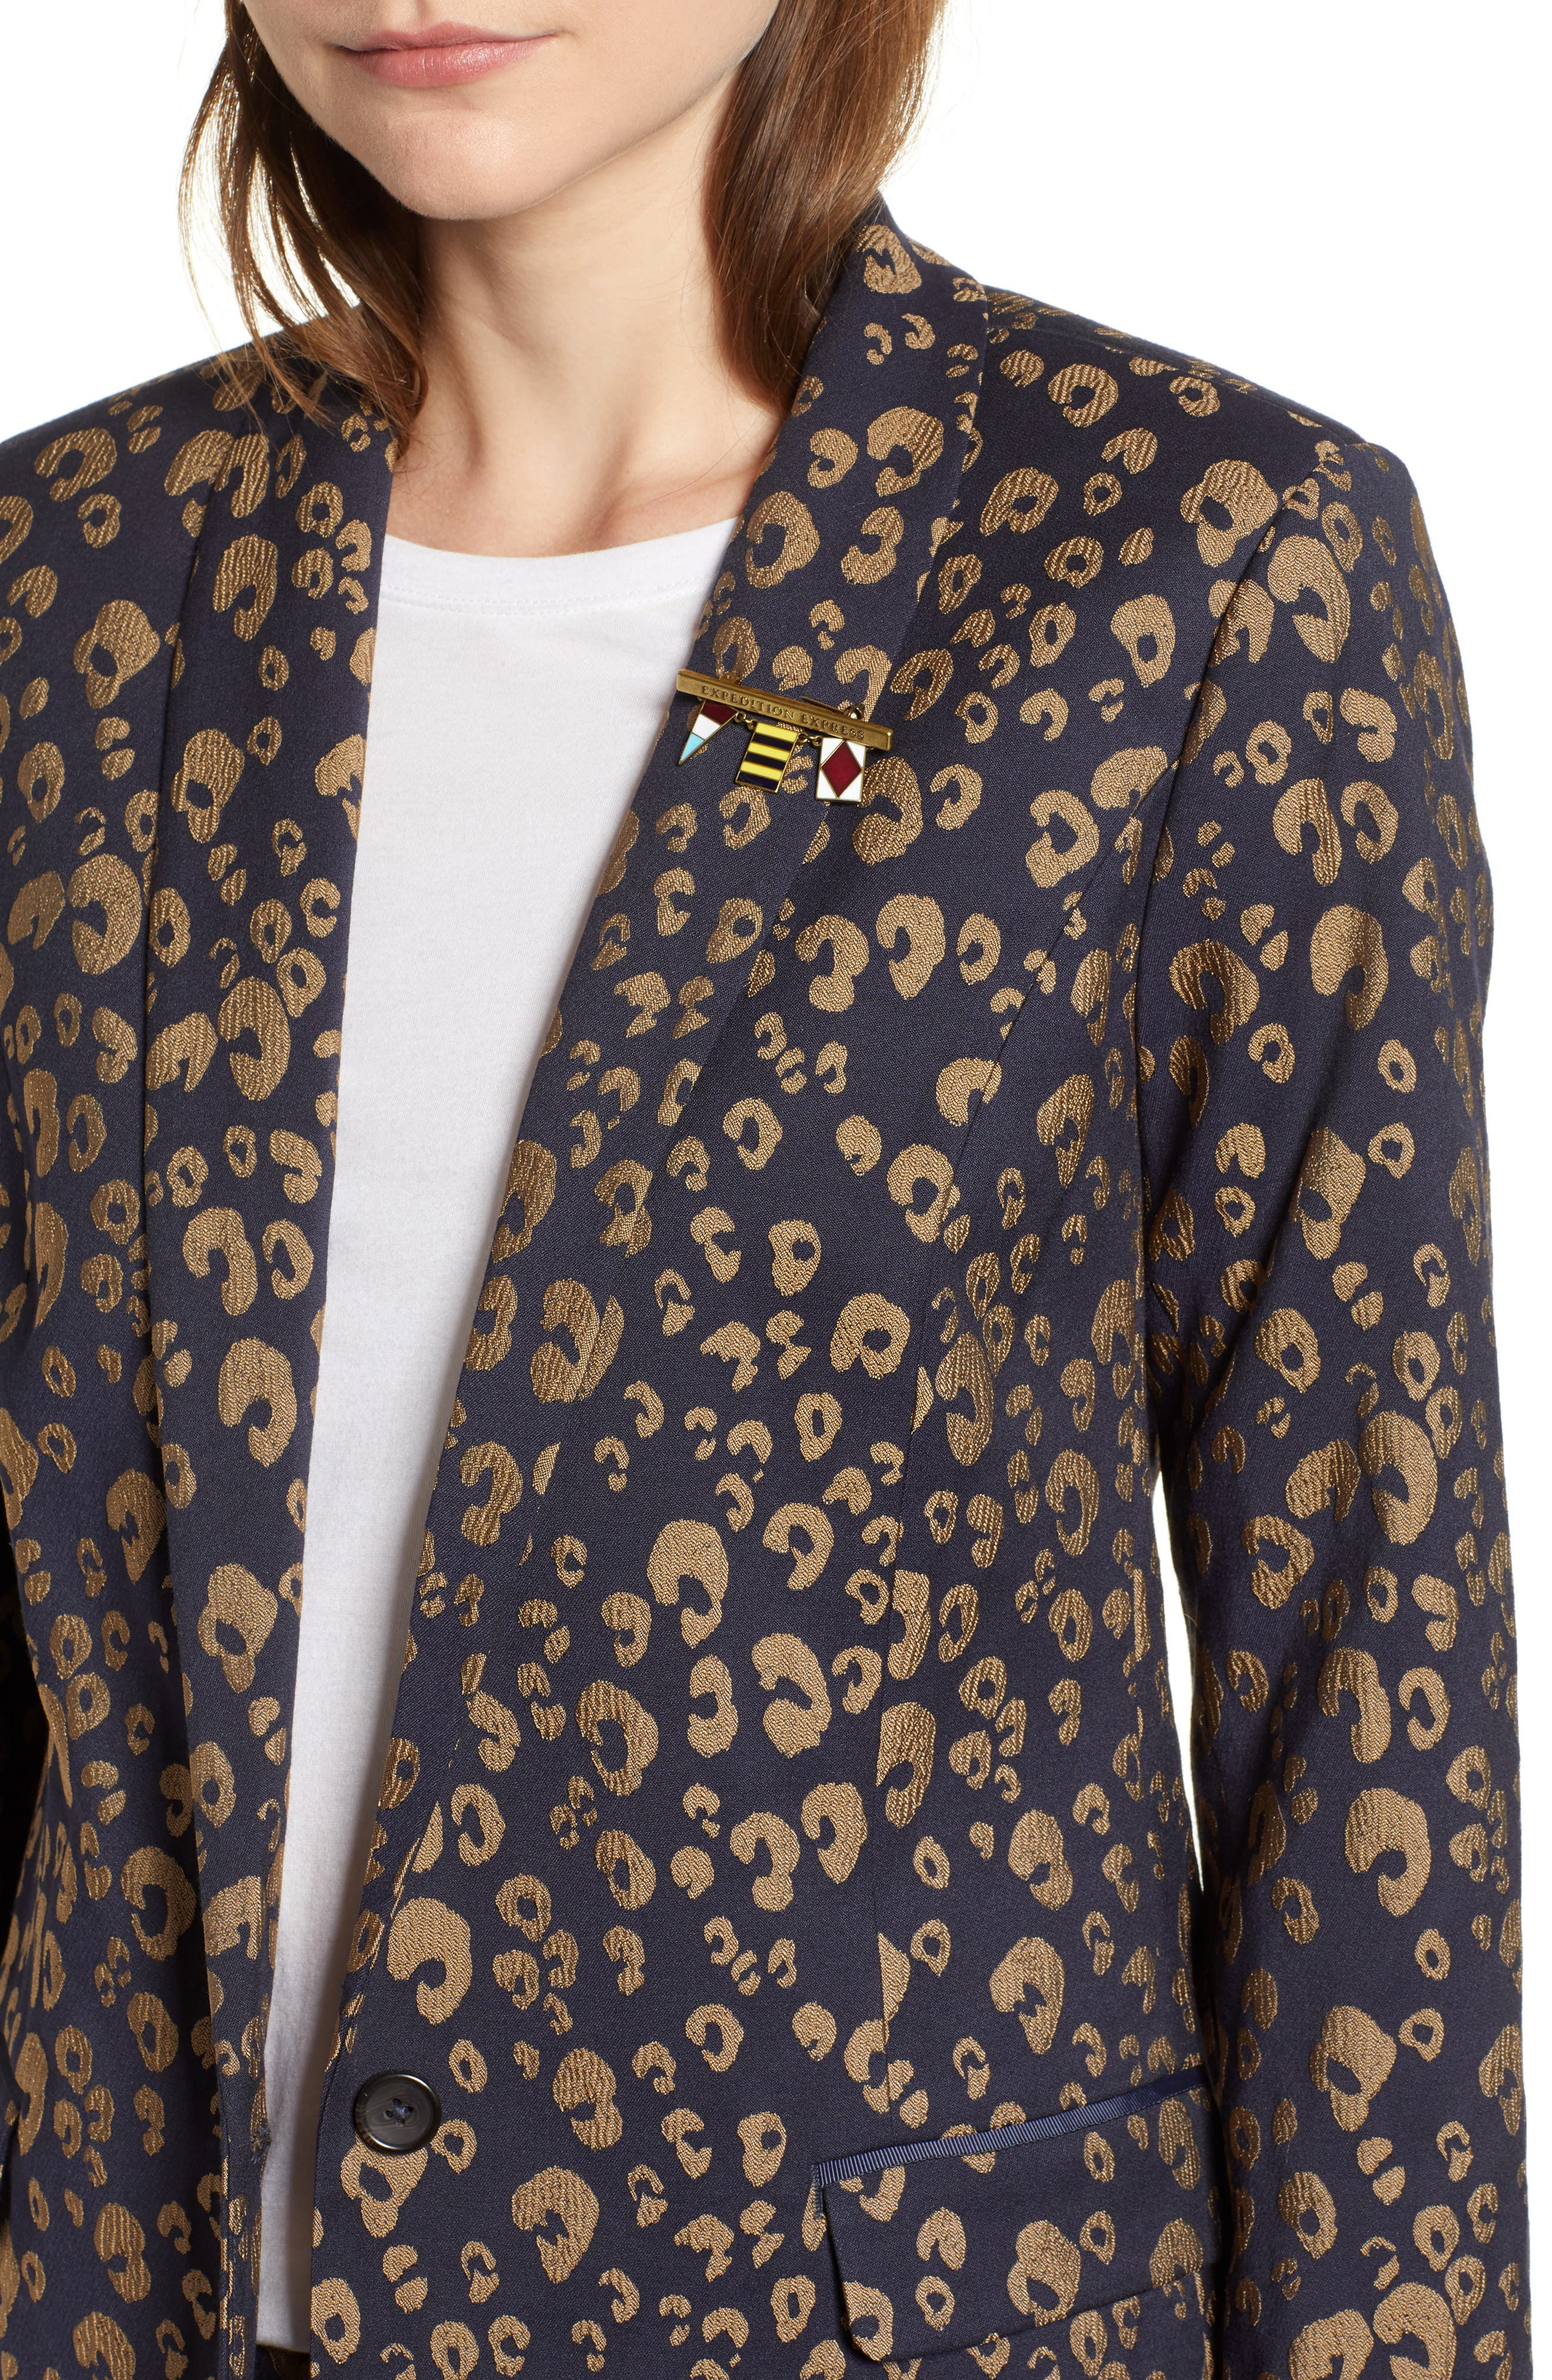 Stretch Jacquard Tailored Blazer,                             Alternate thumbnail 4, color,                             NAVY W/ GOLD LEOPARD PRINT